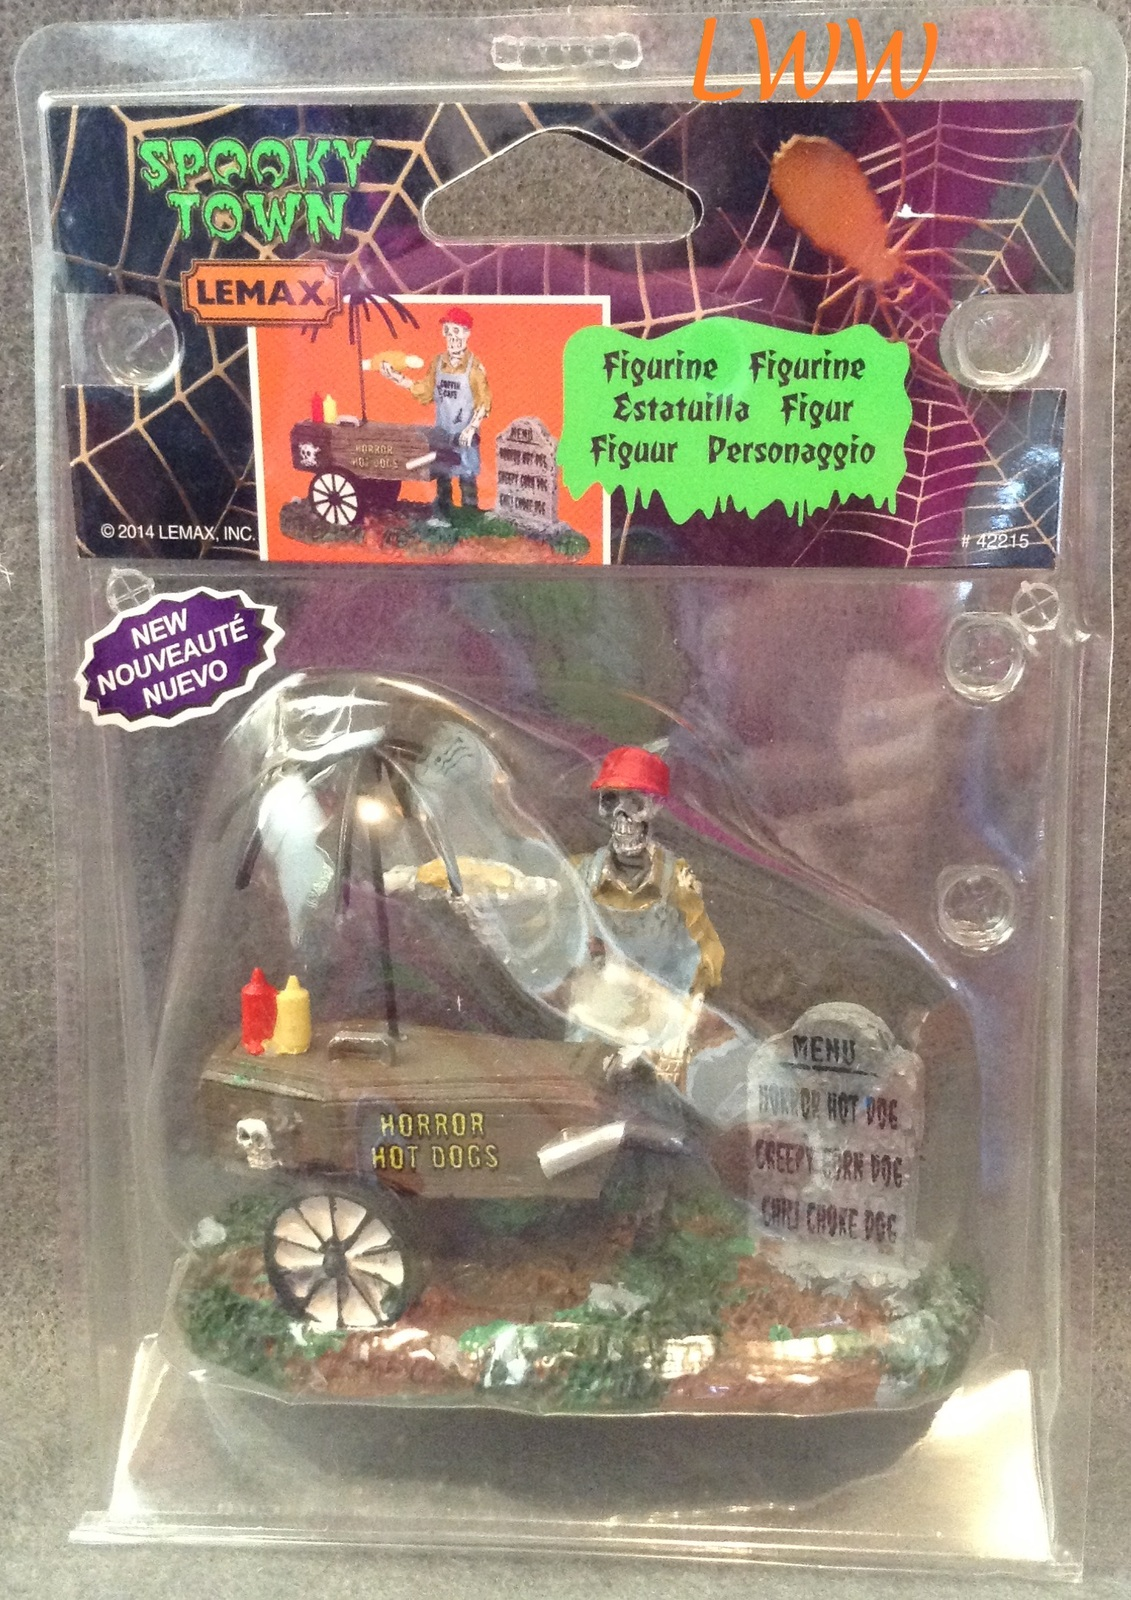 Halloween Lemax Spooky Town Village Ghoul Hot Dog Vendor Accessory Figure